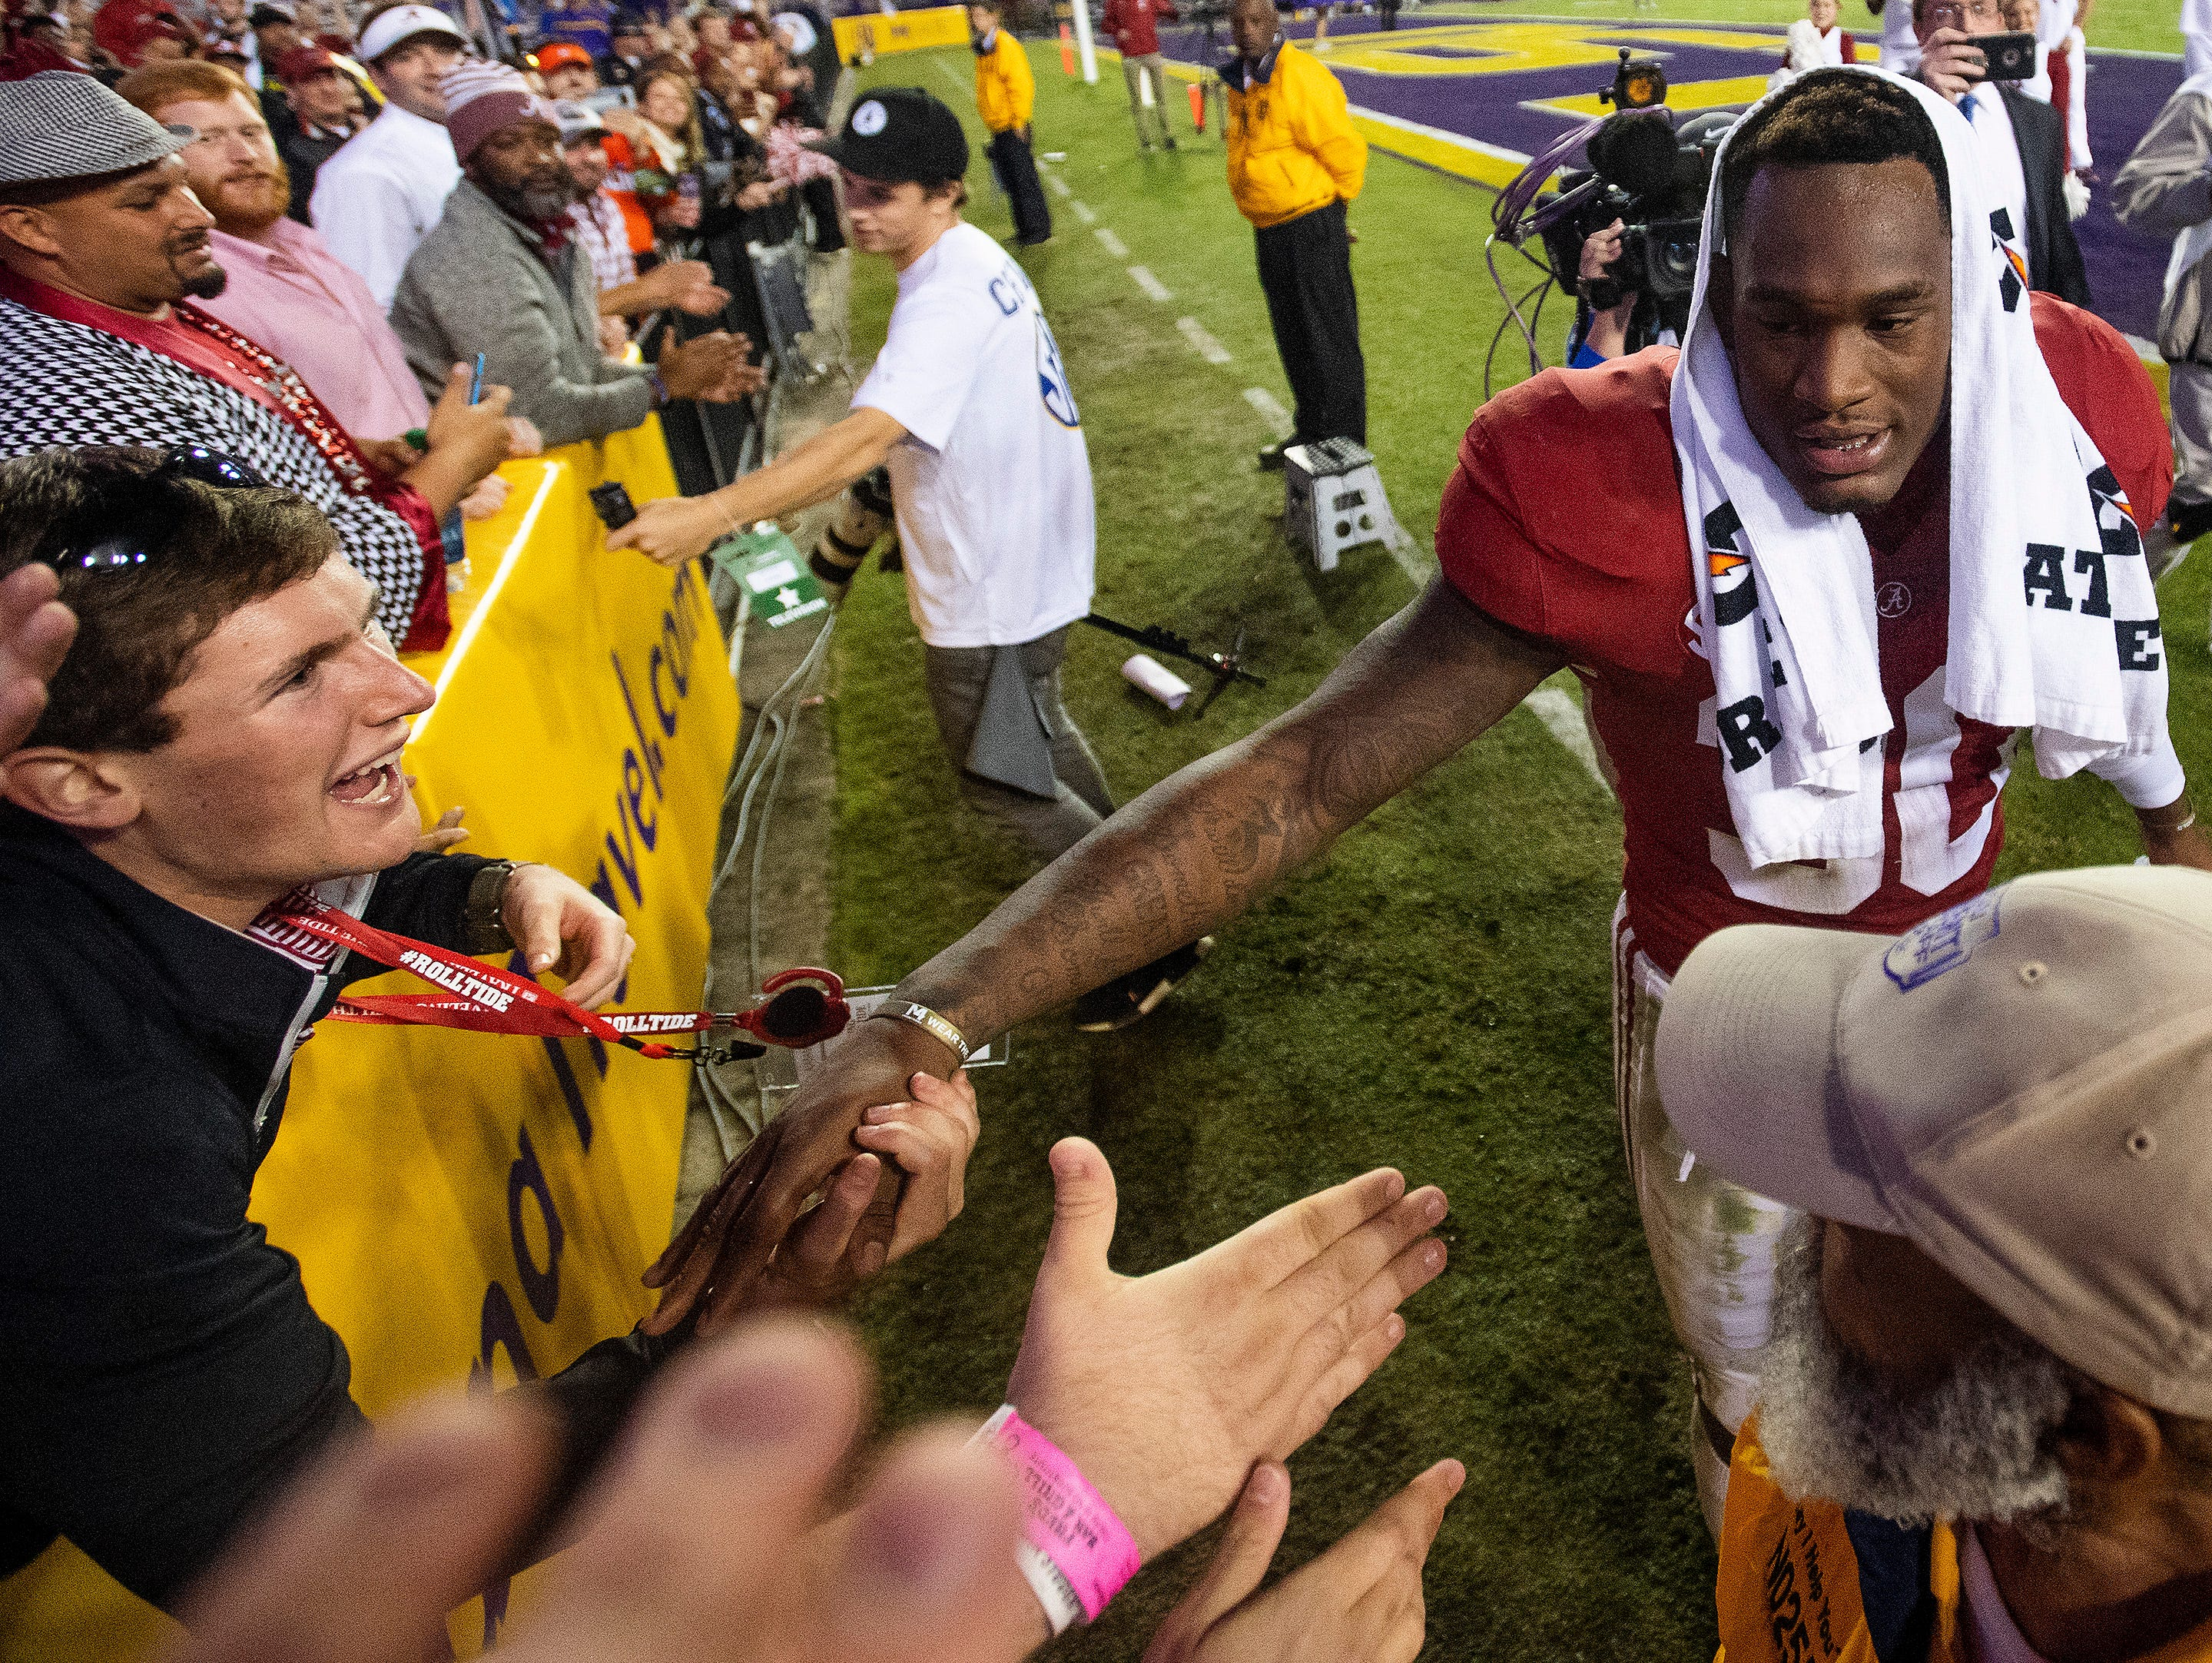 Alabama linebacker Mack Wilson (30) greets fans after defeating LSU at Tiger Stadium in Baton Rouge, La., on Saturday November 3, 2018.